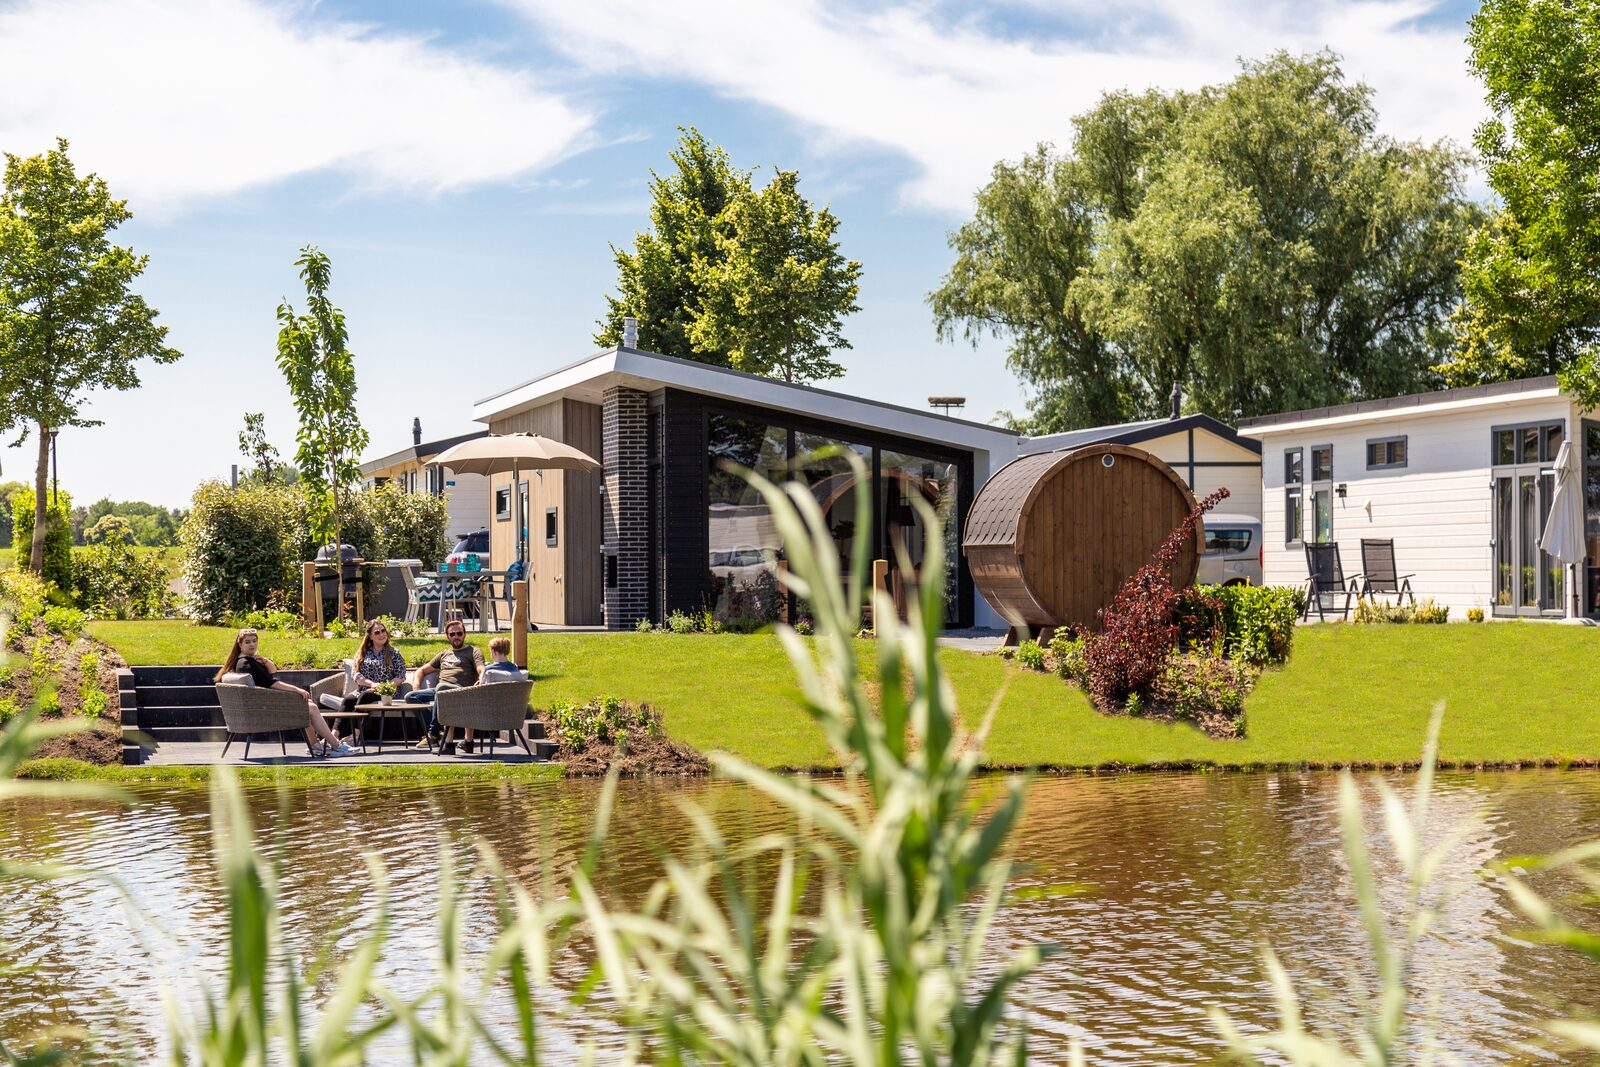 Waterlodge met wellness